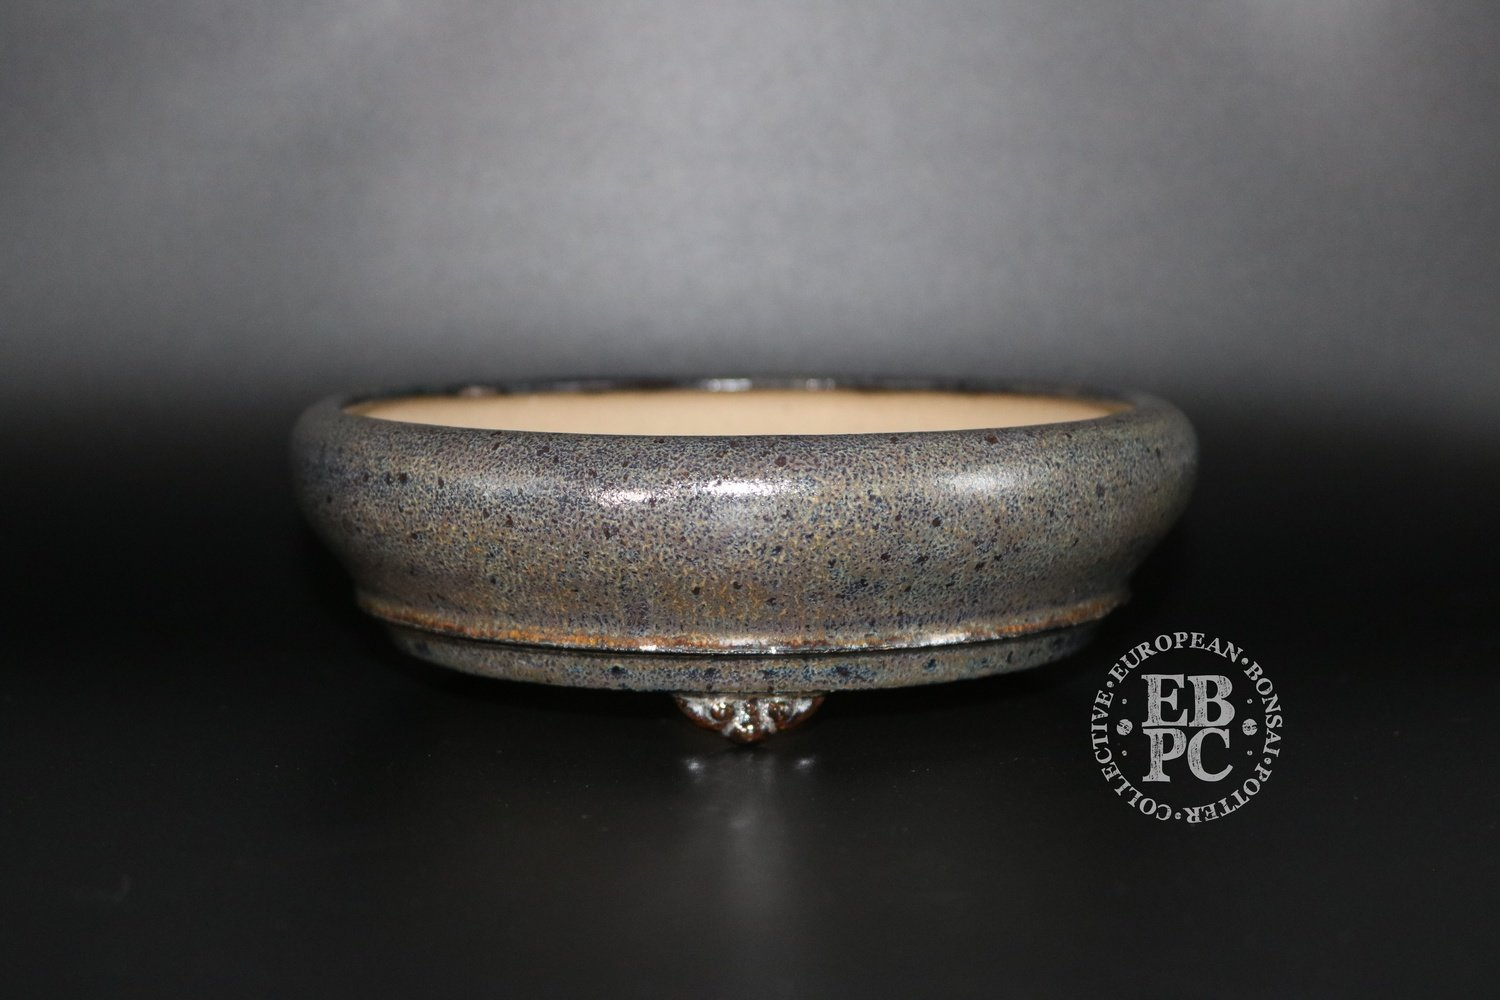 SOLD - Ian Baillie - 17cm; Glazed; Round; Shohin; Namako like glaze; Browns; Greens; Yellow; White; Black; Basal band; Cloud feet